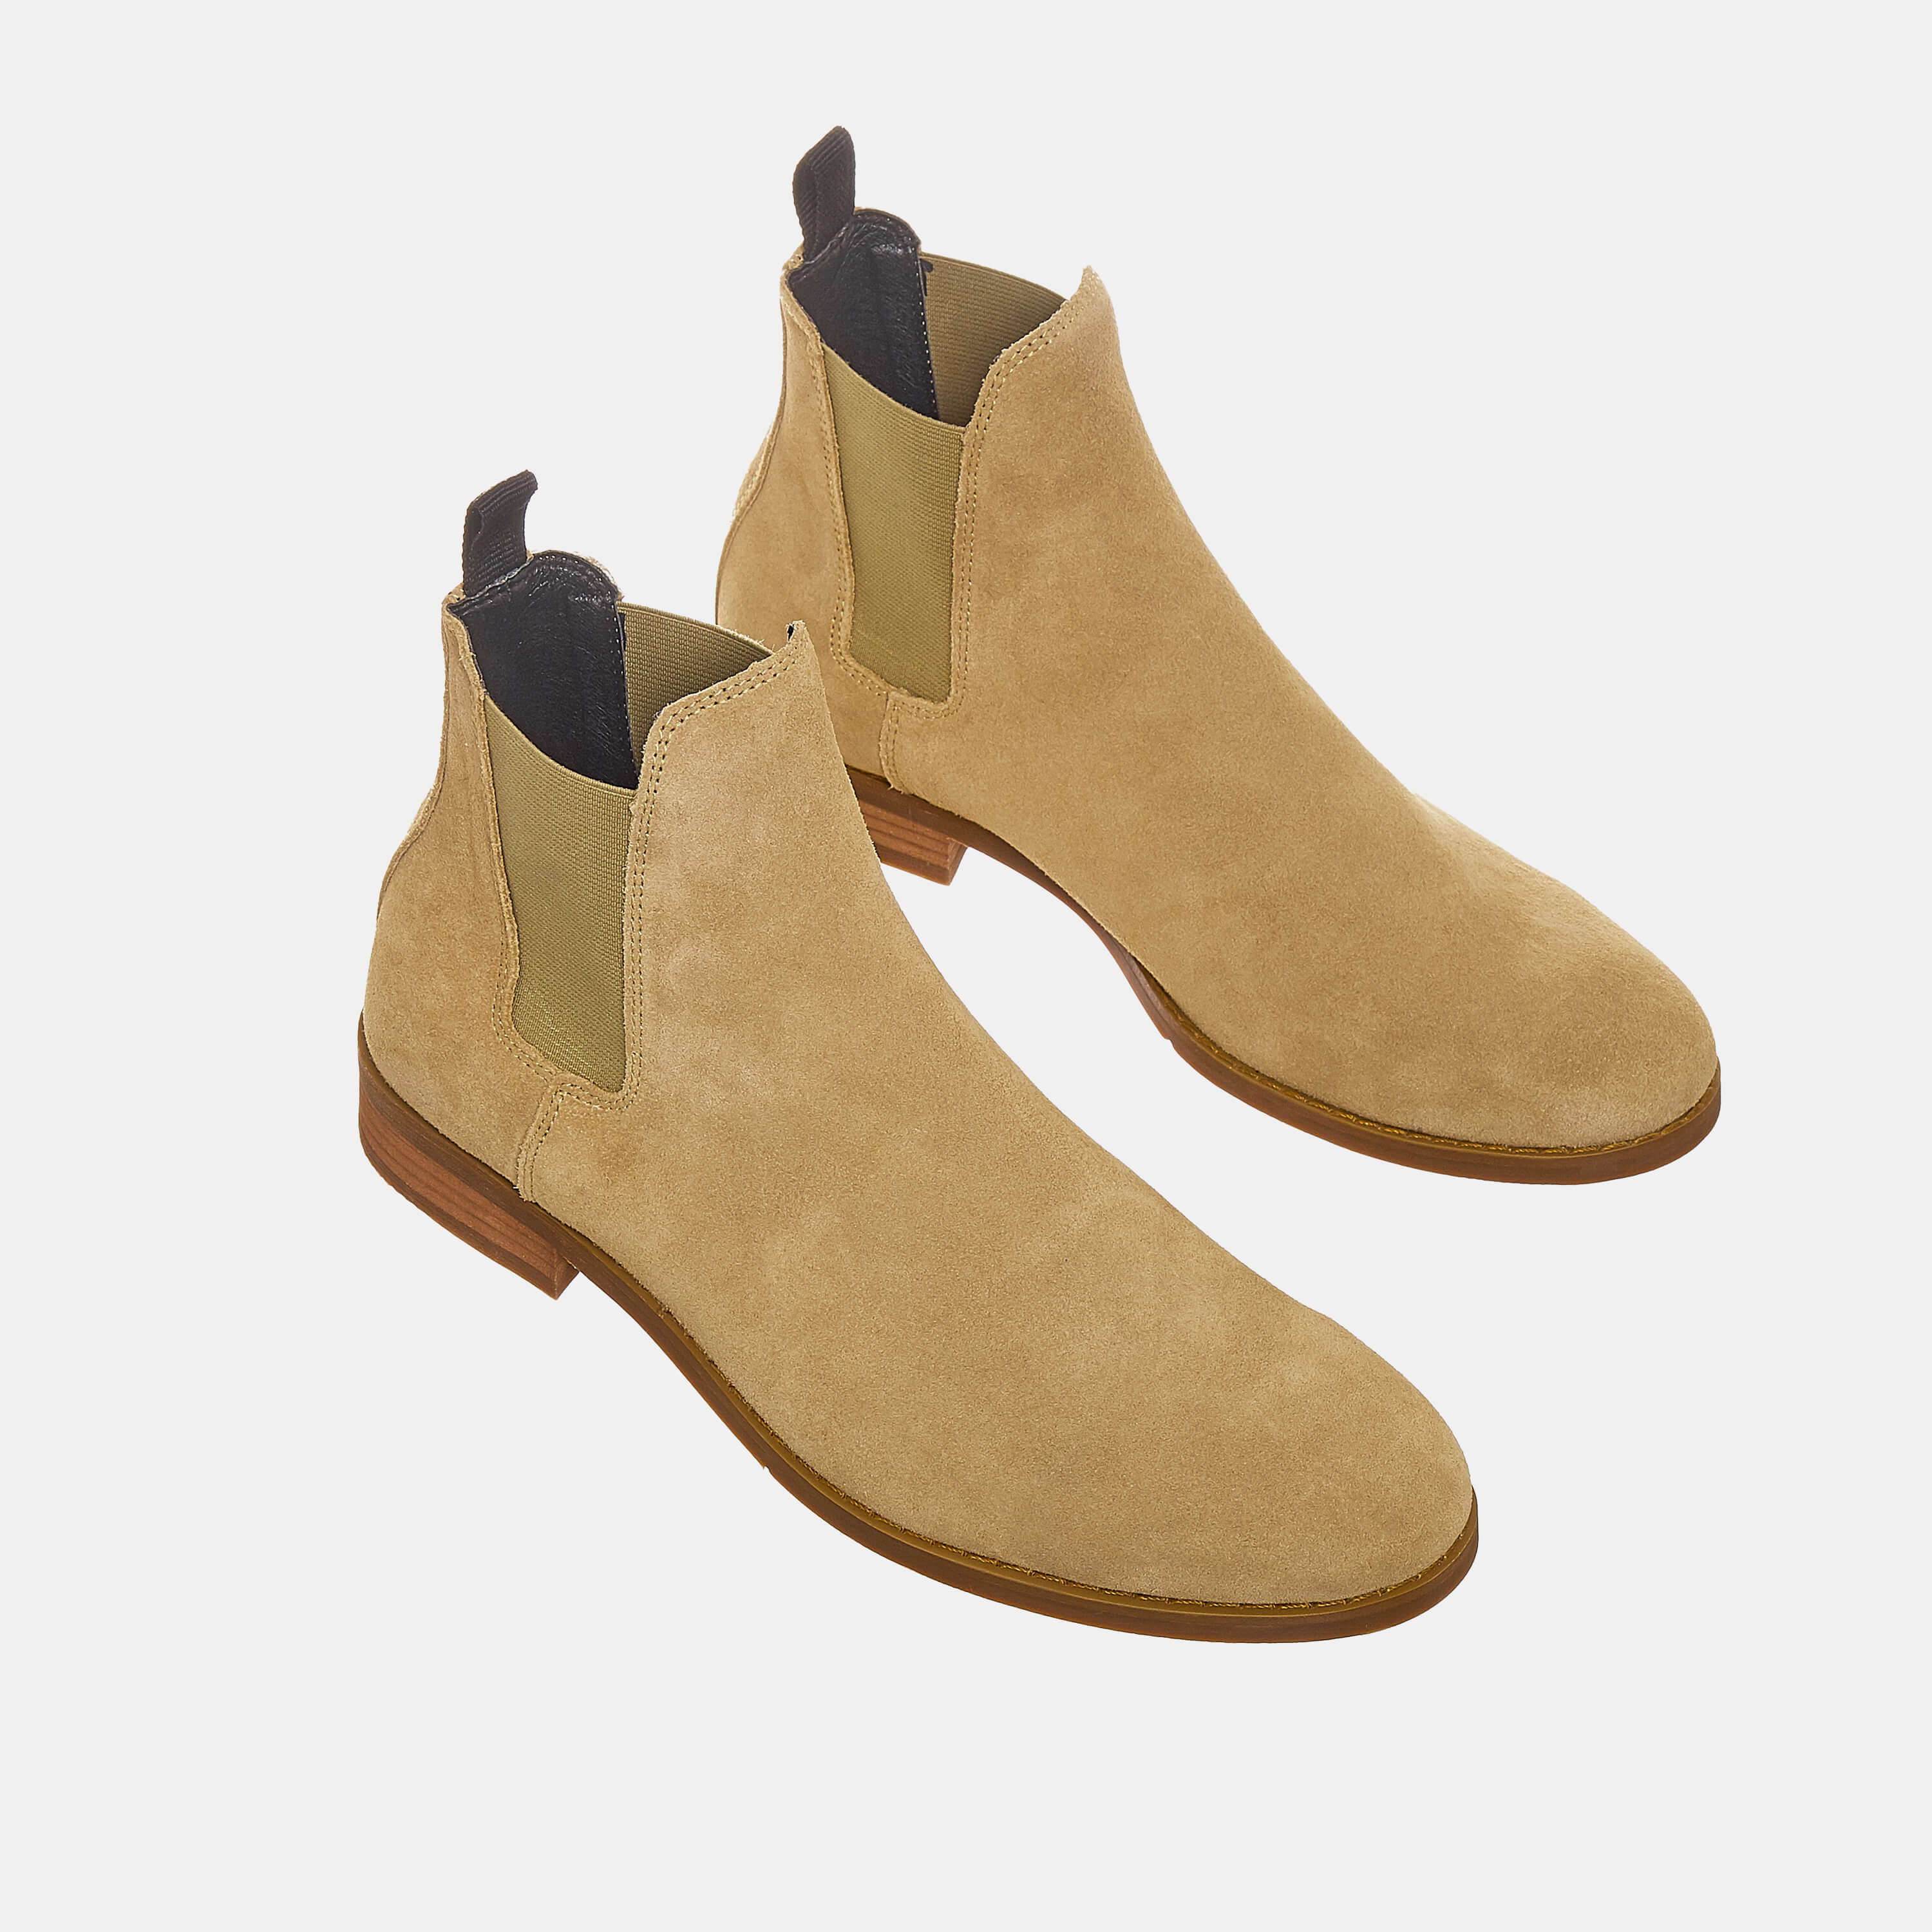 Suede Chelsea Boots In Tan Color Suede Chelsea Boots In Tan Color 3